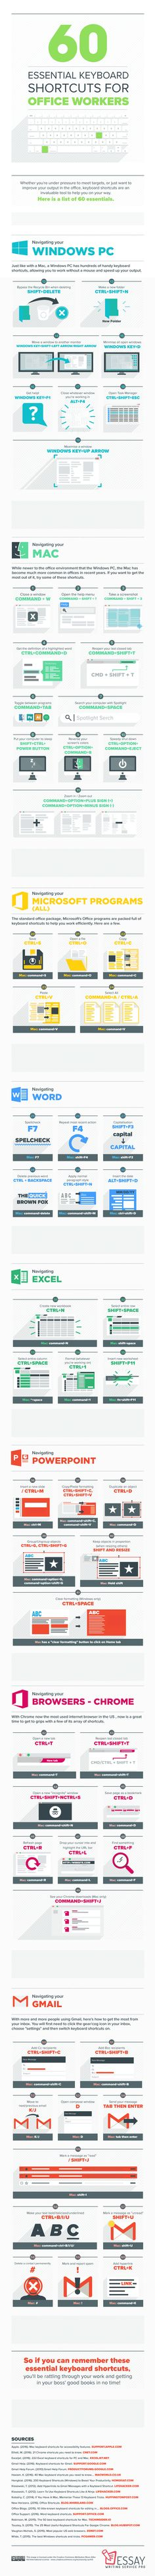 """Essential Keyboard Shortcuts for Office Workers,"""" infographic design by Essay Writing Services Pro, via Lifehacker. Software, Web Design, Graphic Design, Keyboard Shortcuts, Microsoft Office, Writing Services, Essay Writing, Virtual Assistant, Good To Know"""